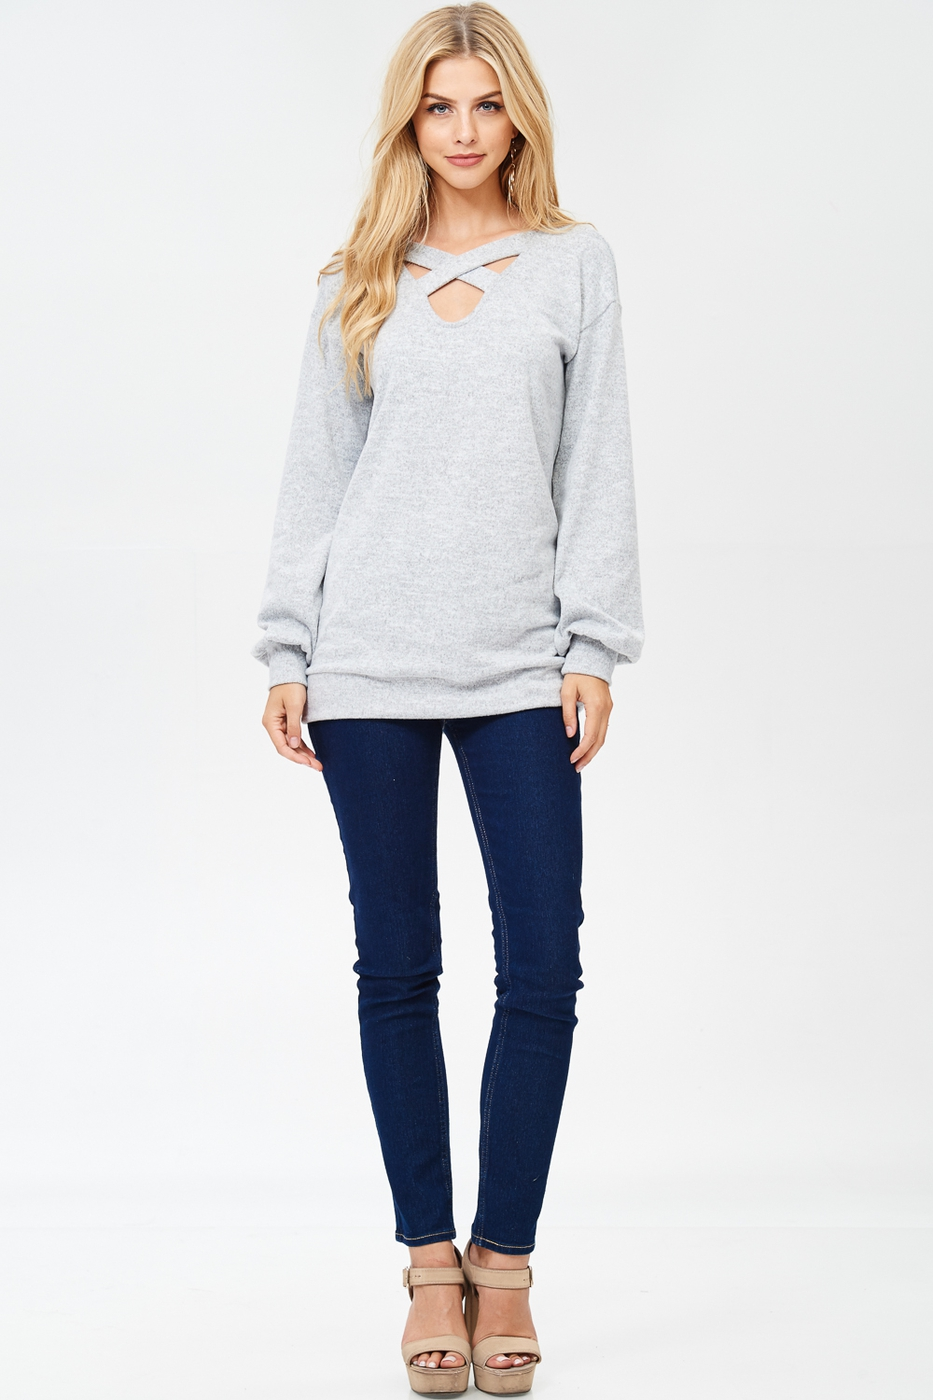 Criss Cross Detail Sweater - orangeshine.com